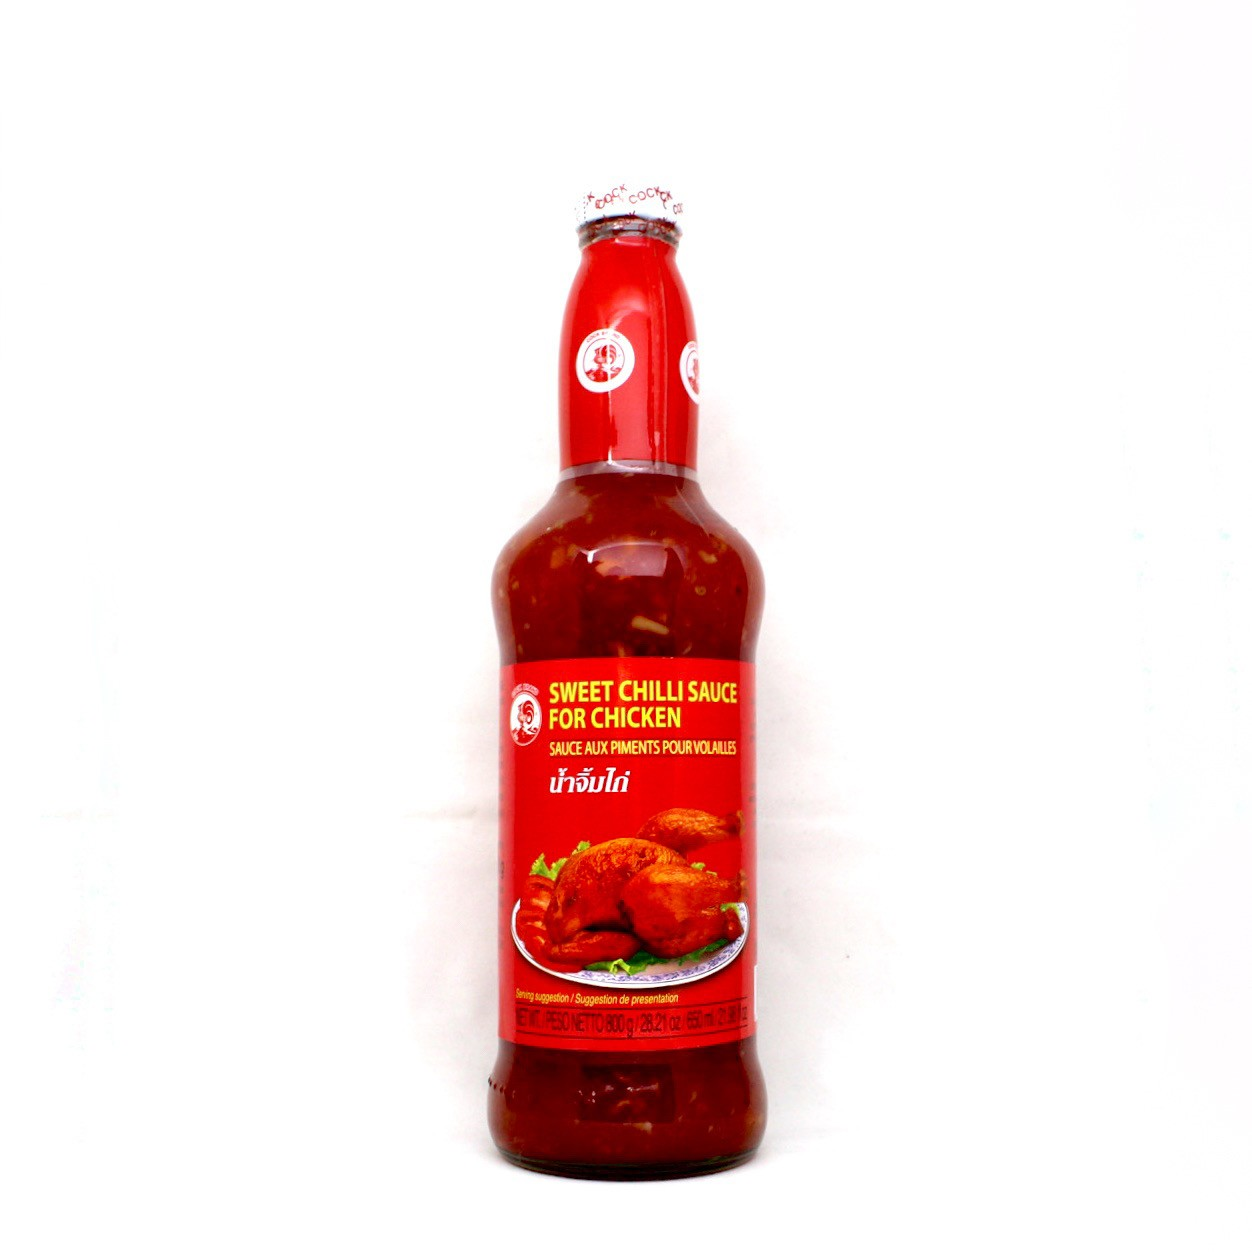 COCK CHILLI SWEET CHILLI SAUCE FOR CHICKEN 800g